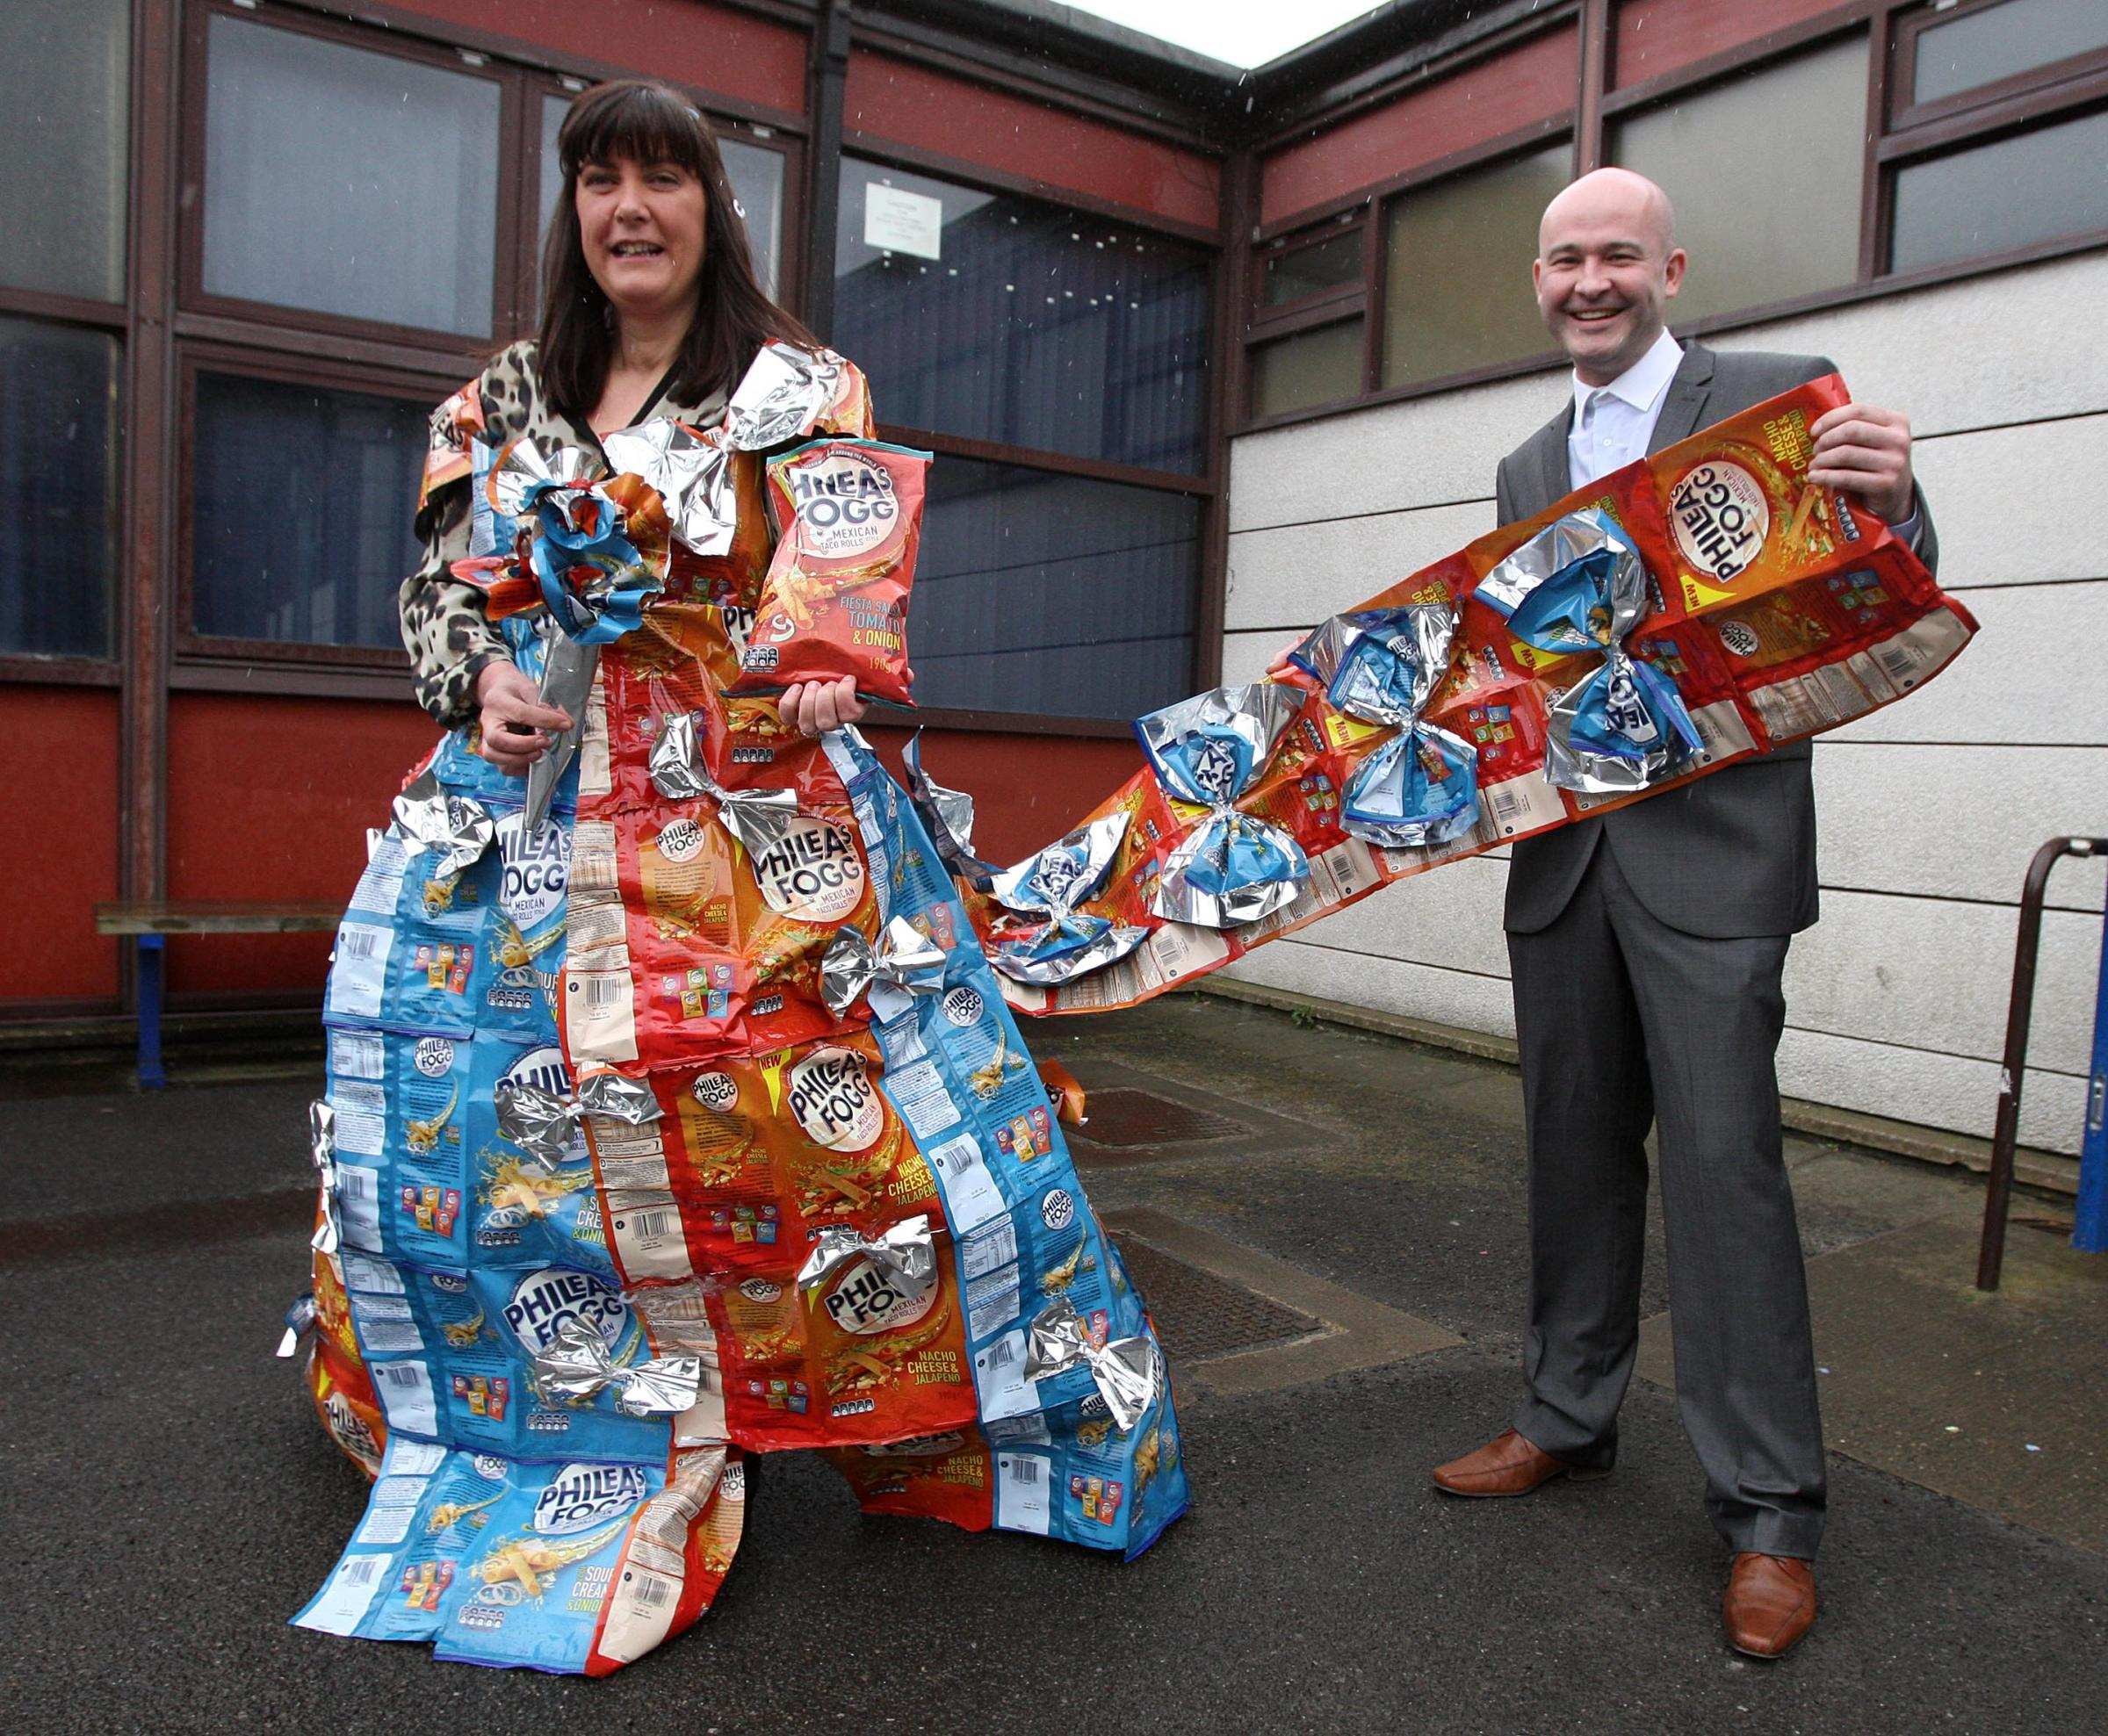 Bride has wedding dress made out of crisp packets